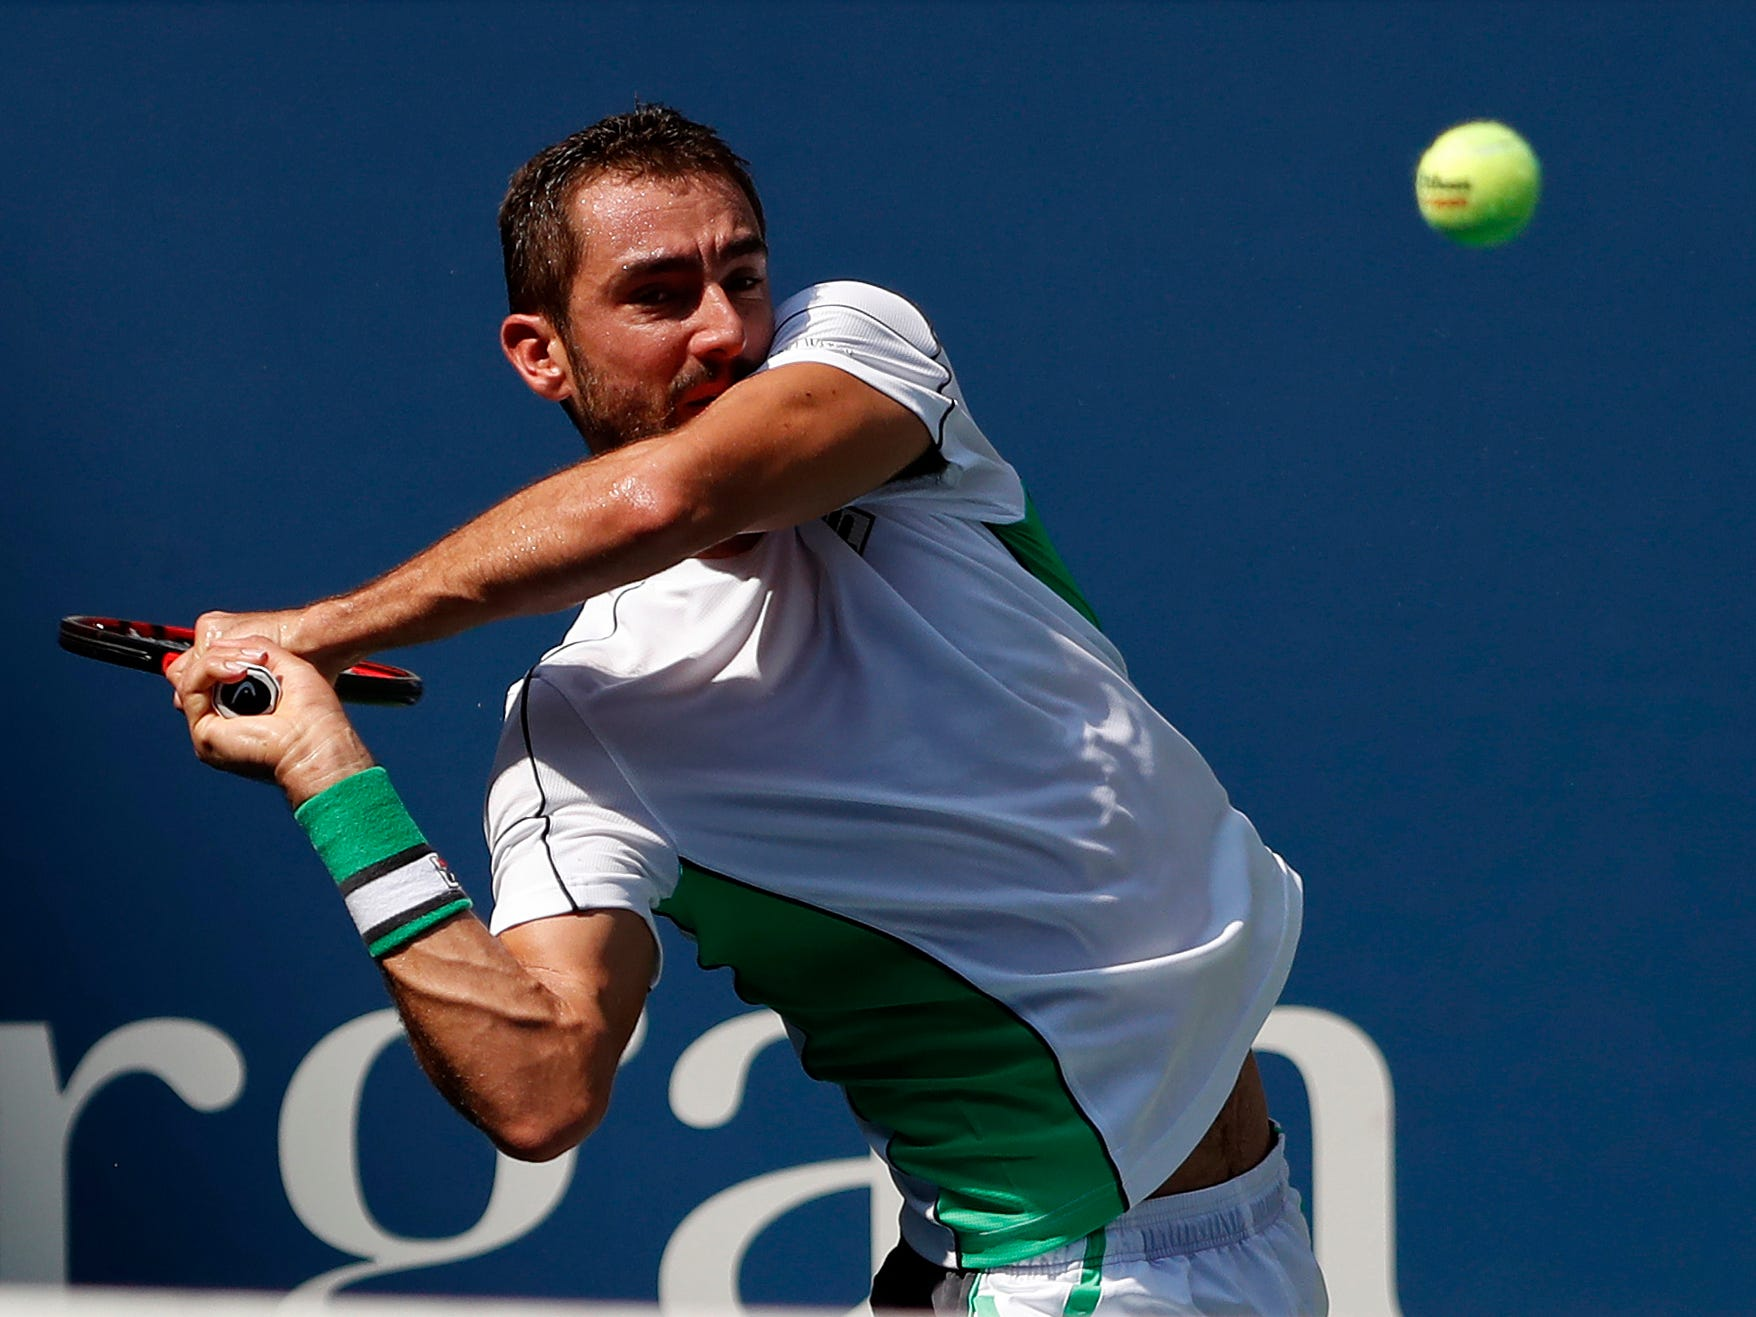 Croatia's Marin Cilic of Croatia hits a backhand against Japan's Kei Nishikori during their quarterfinal match.